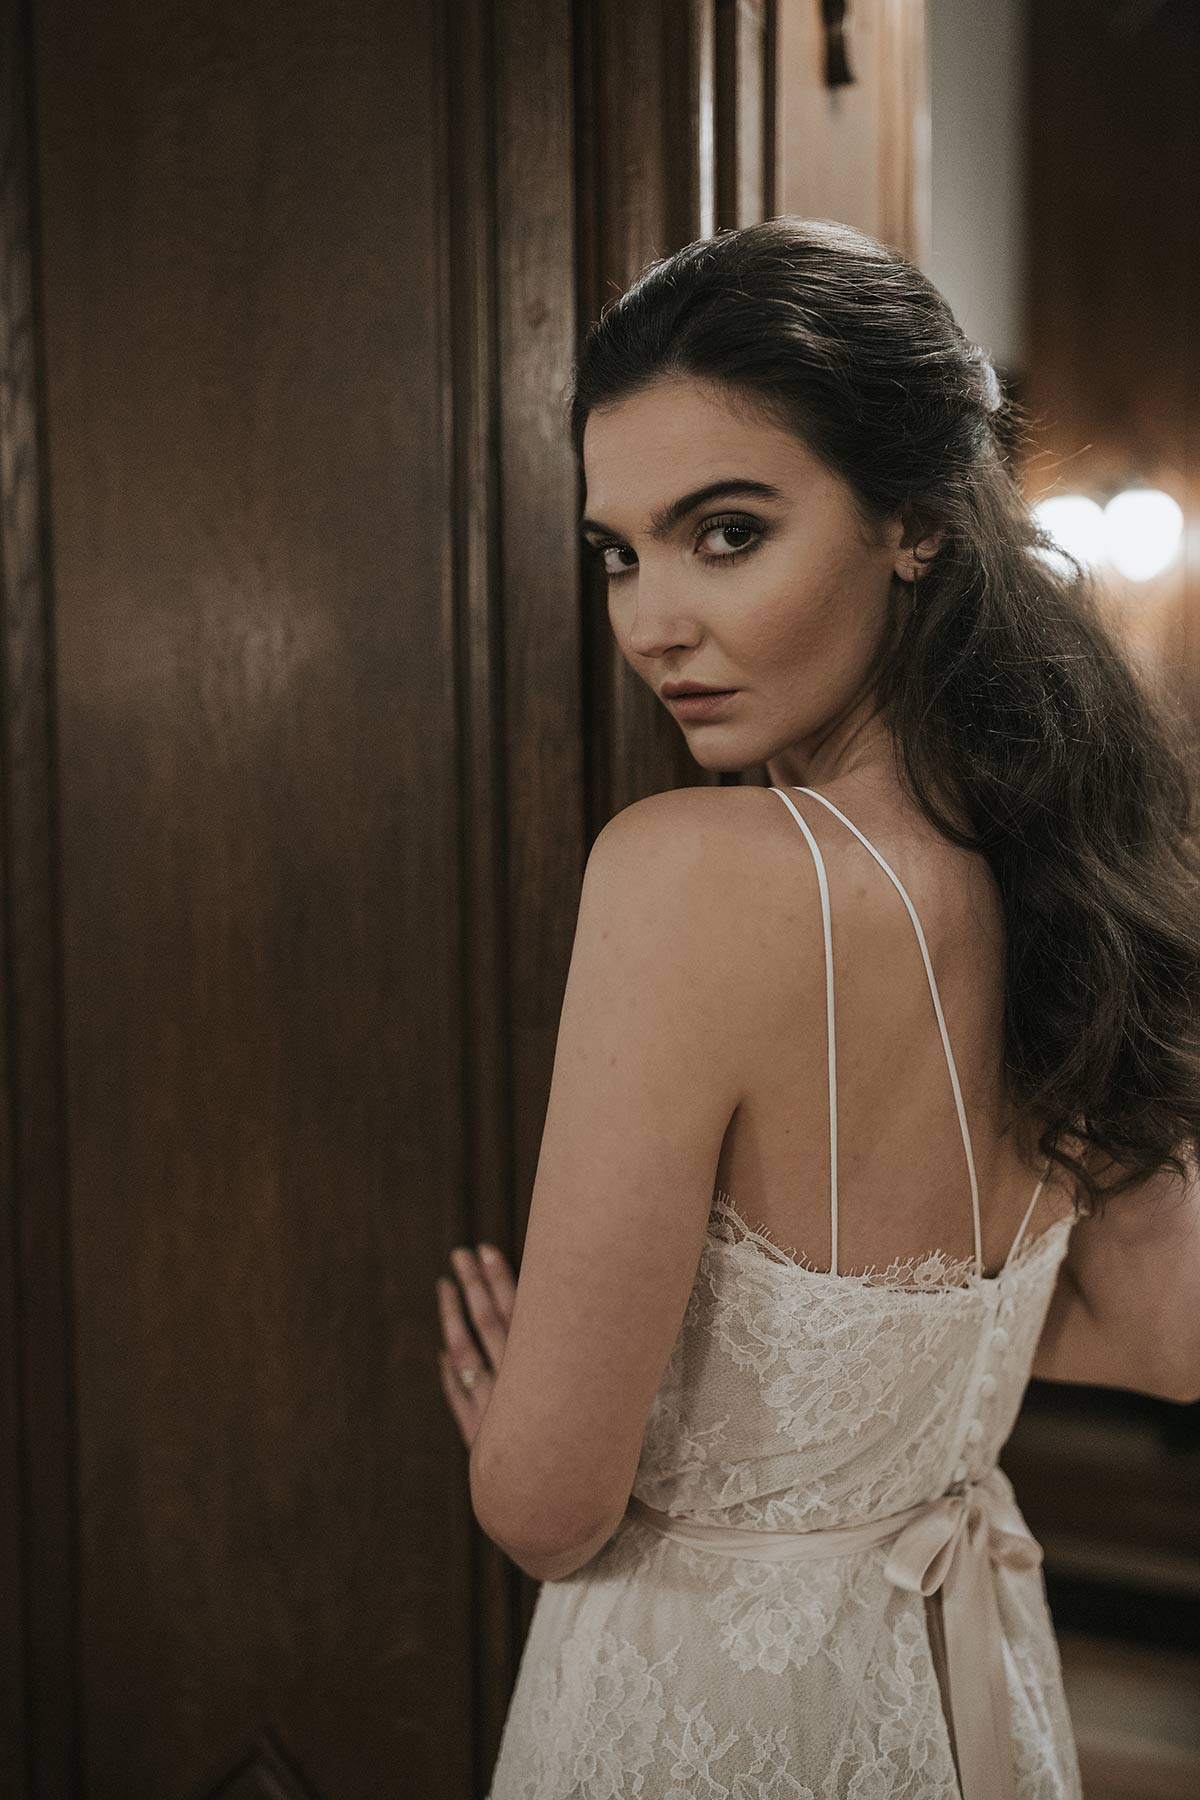 Lavictoire editorial Thetis top wedding dress open back lace and straps